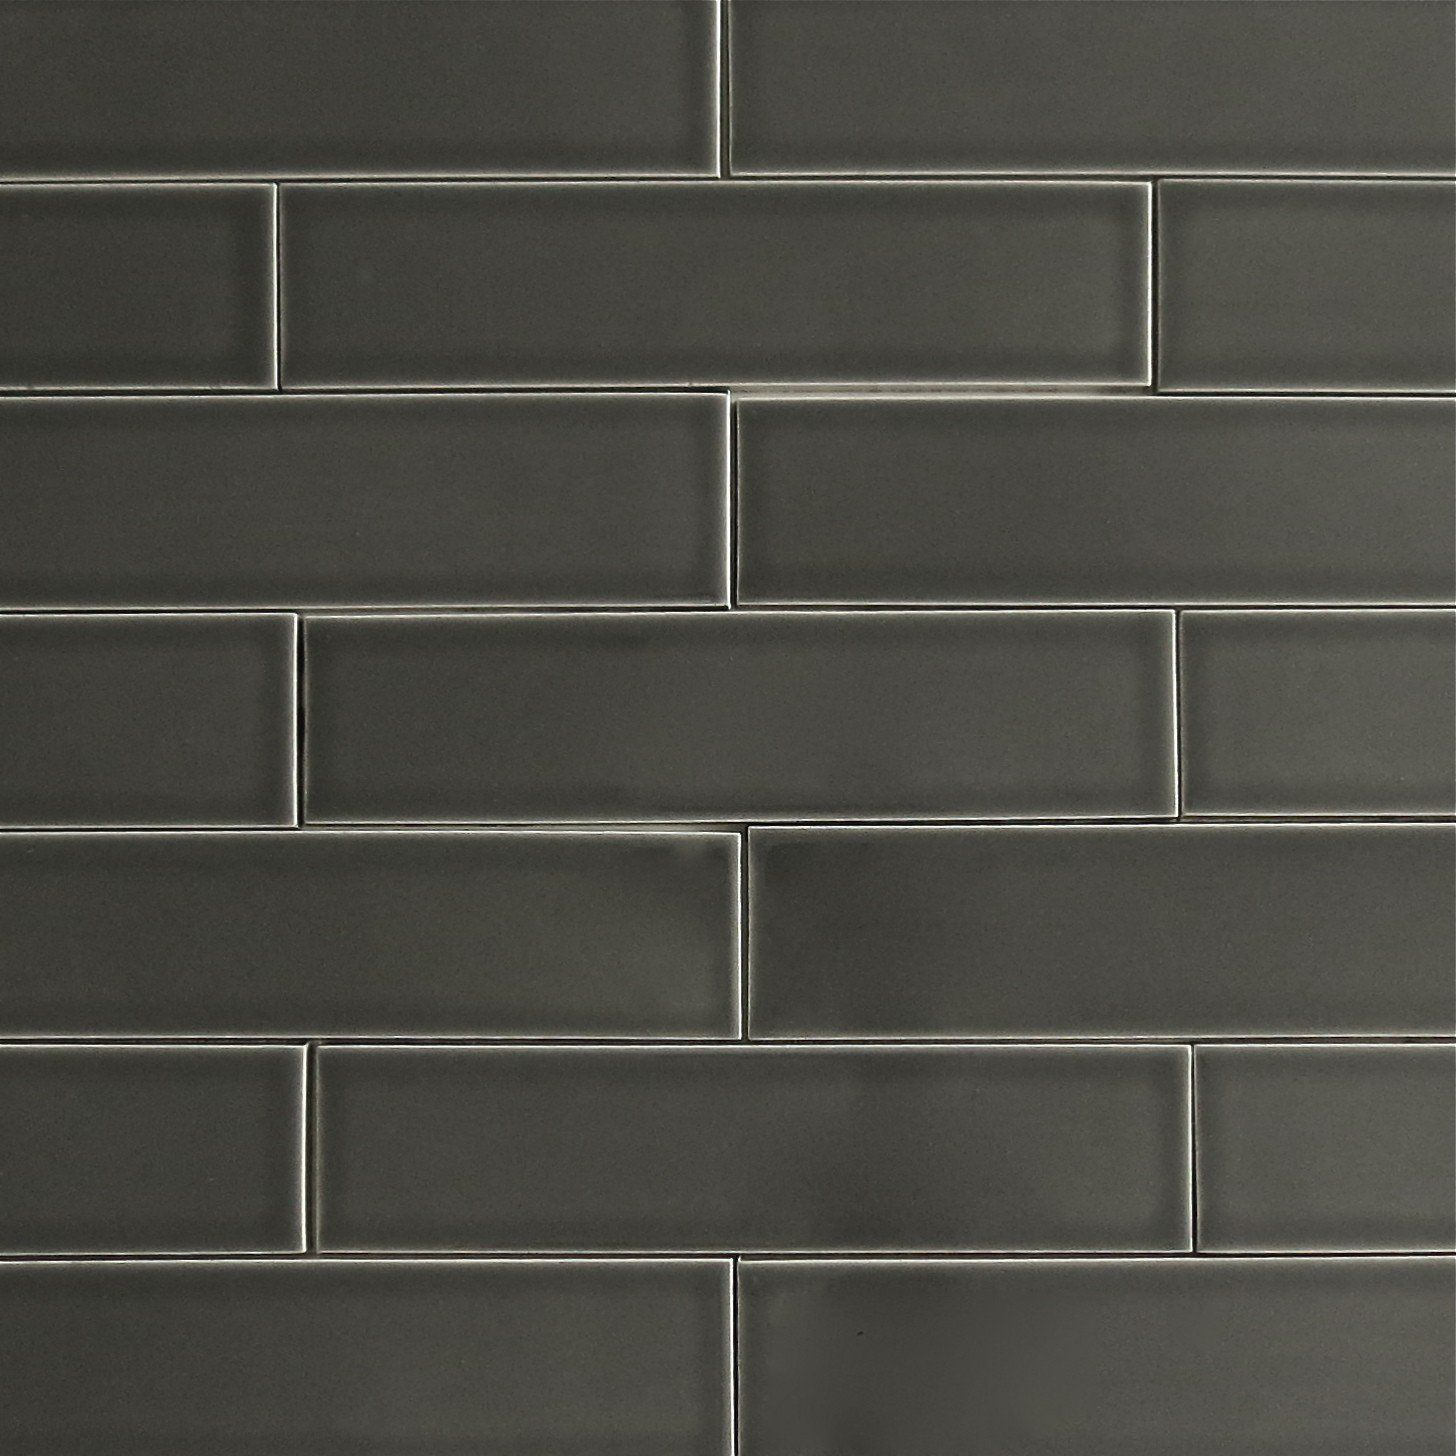 Kiln ceramic 2x8 carbon dark gray ceramic tile subway tiles clayhaus 2x8 carbon dark gray ceramic tile this tile is well suited as kitchen dailygadgetfo Choice Image